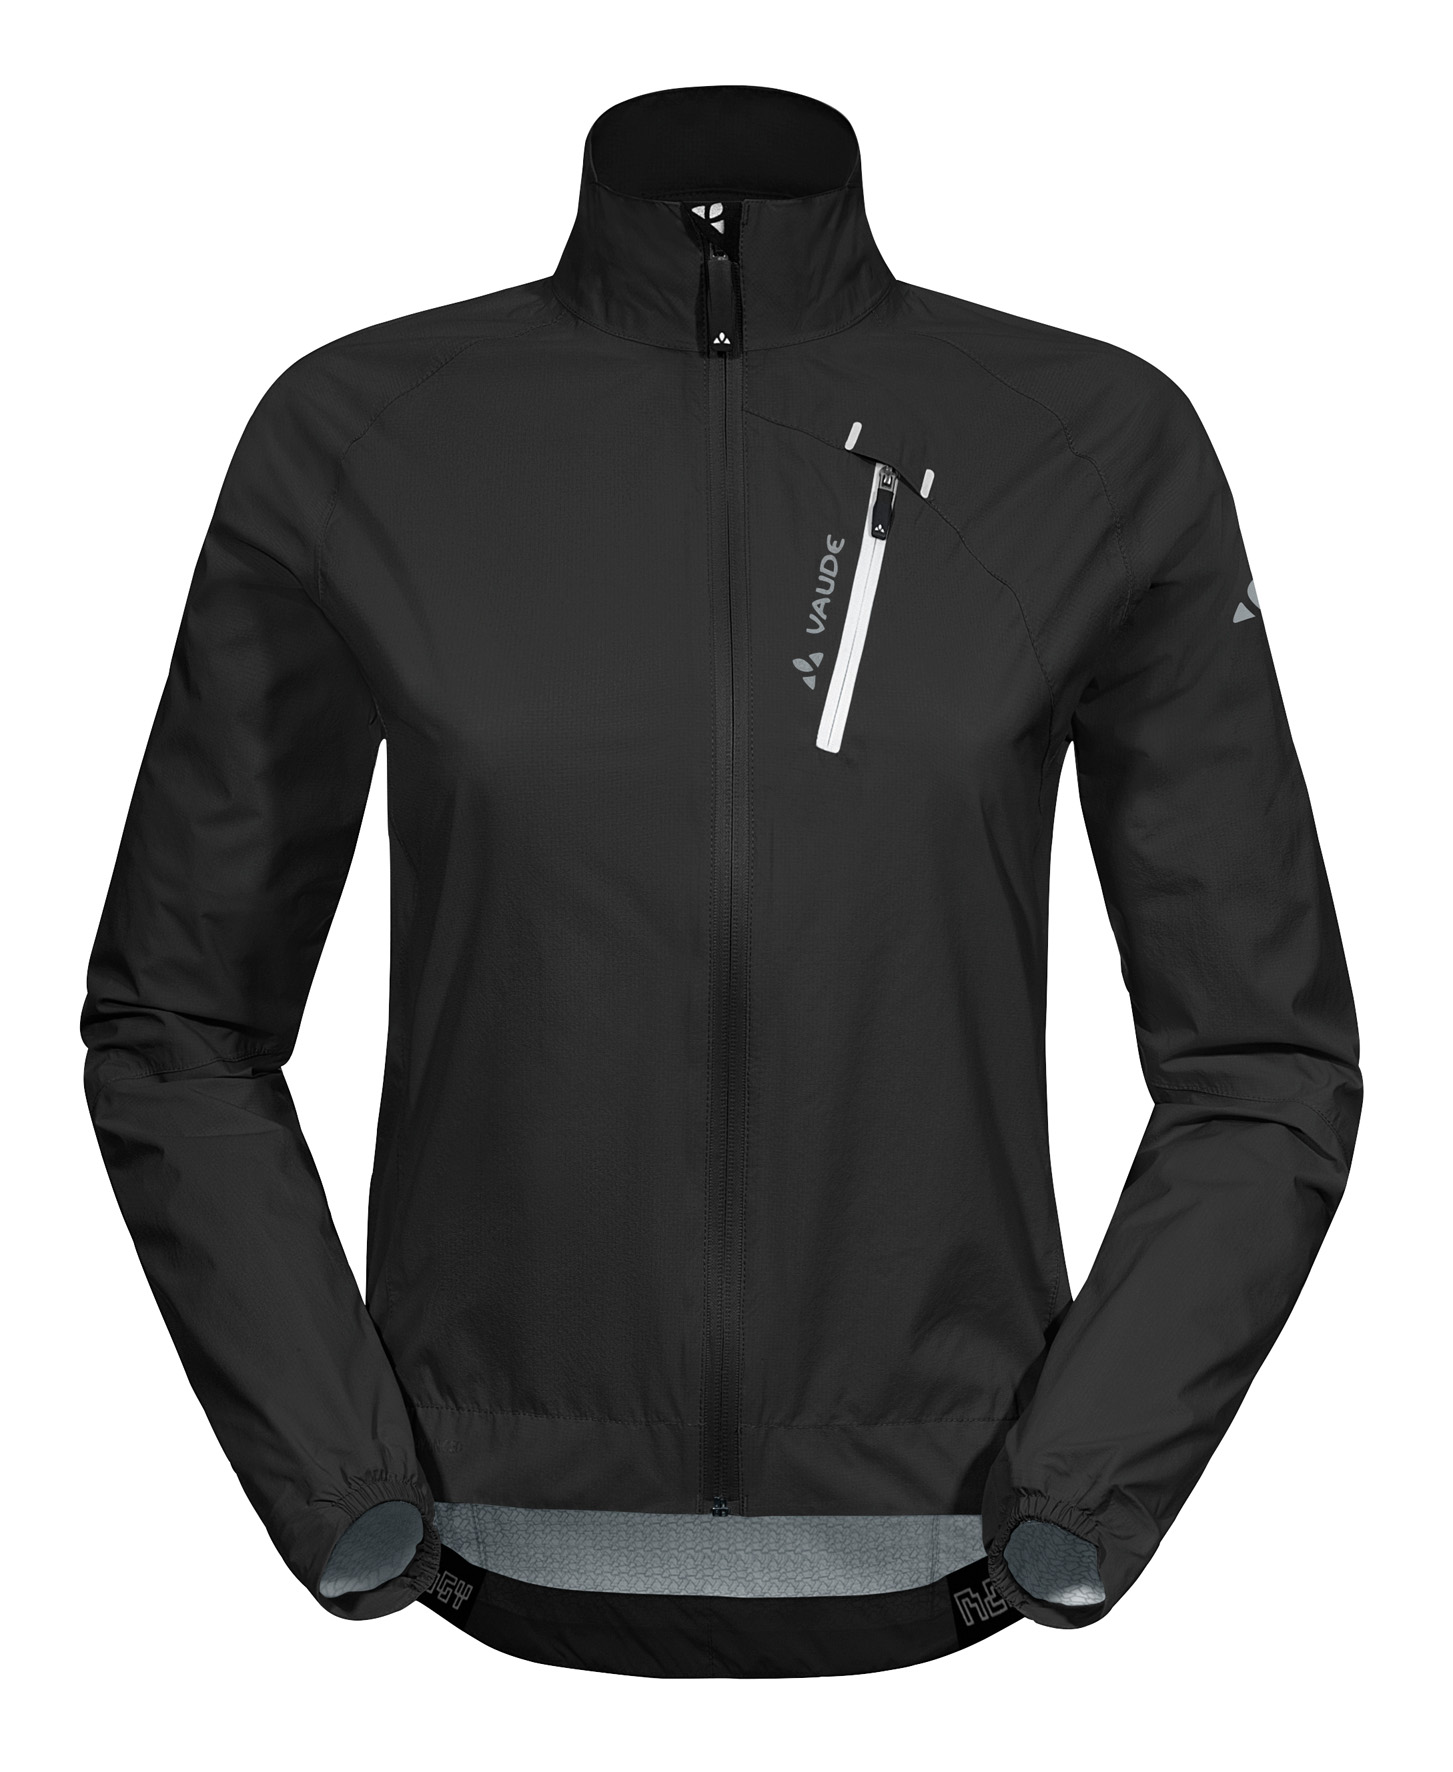 VAUDE Women´s Sky Fly Jacket II black Größe 34 - schneider-sports